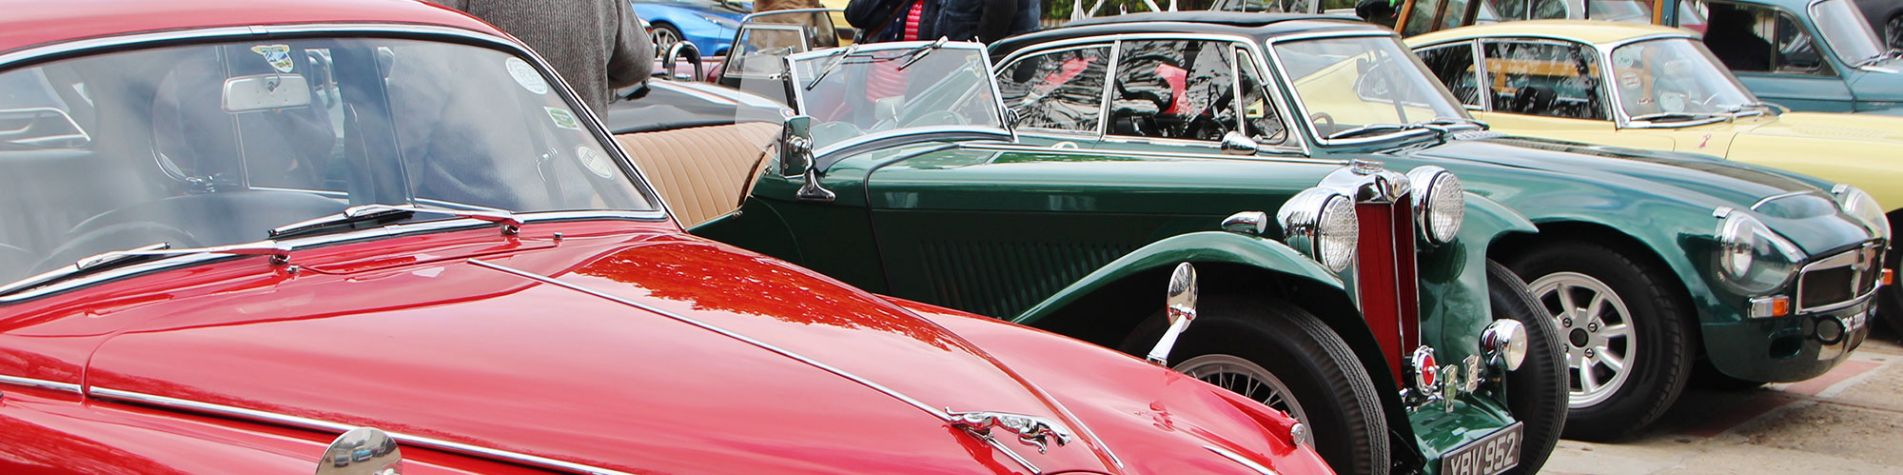 british-marques-day-jaguar-header.jpg